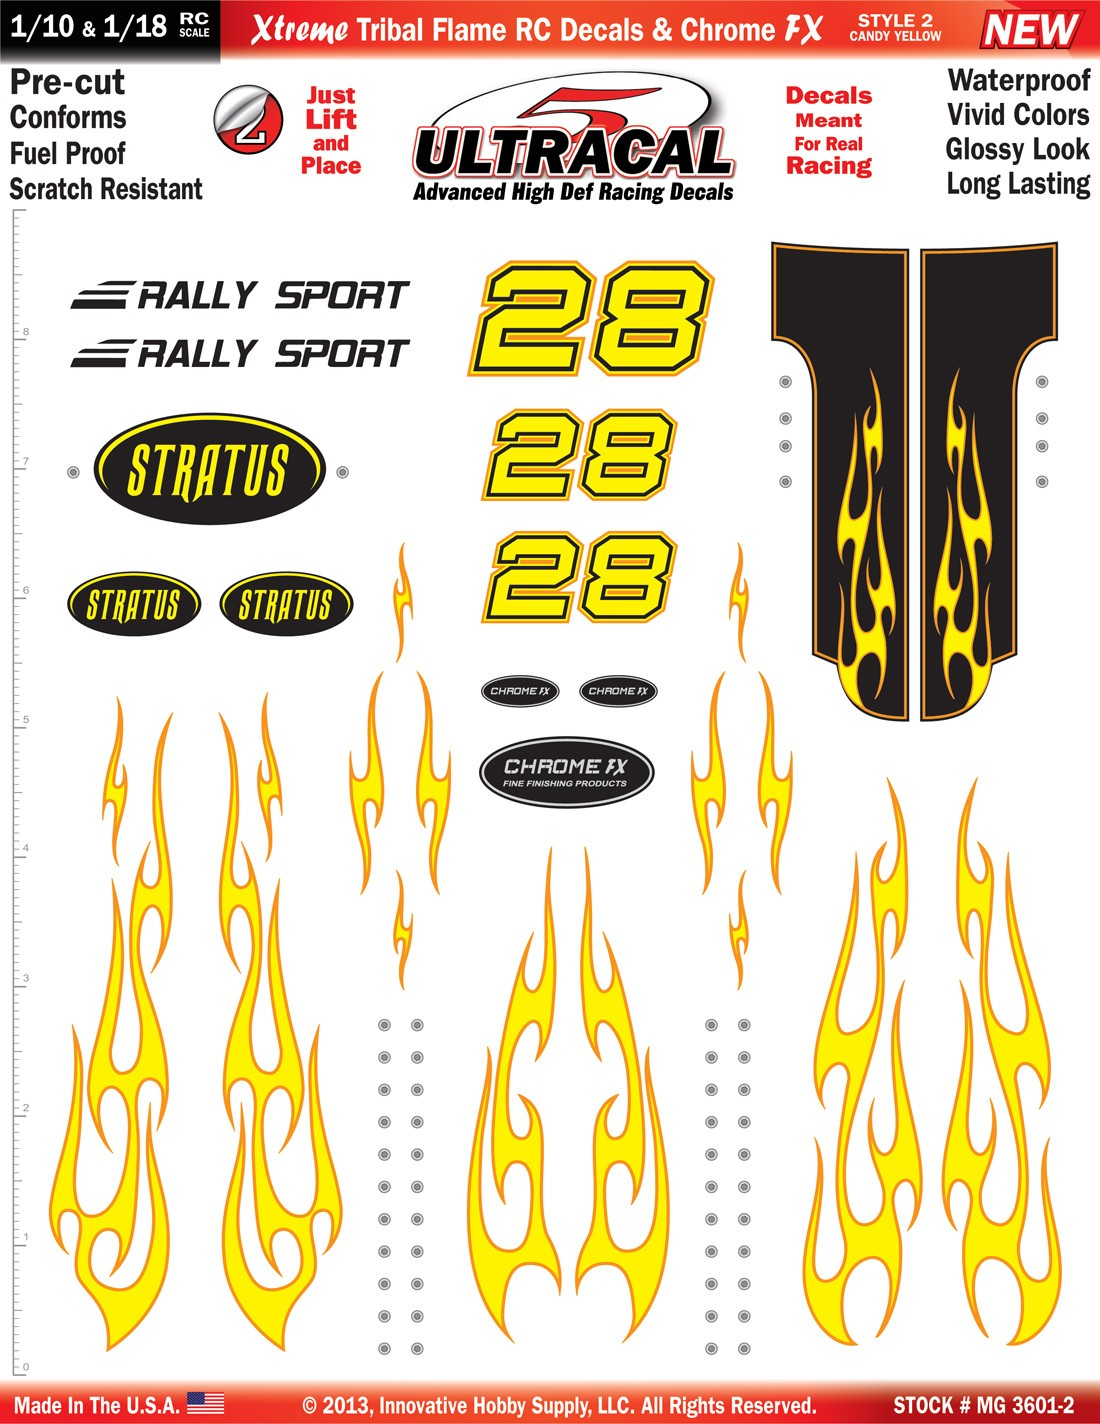 MG 3601-2 Ultracal Candy Yellow Xtreme Tribal Flame RC Decals & Chrome FX for 1:10 and 1:18 Scale